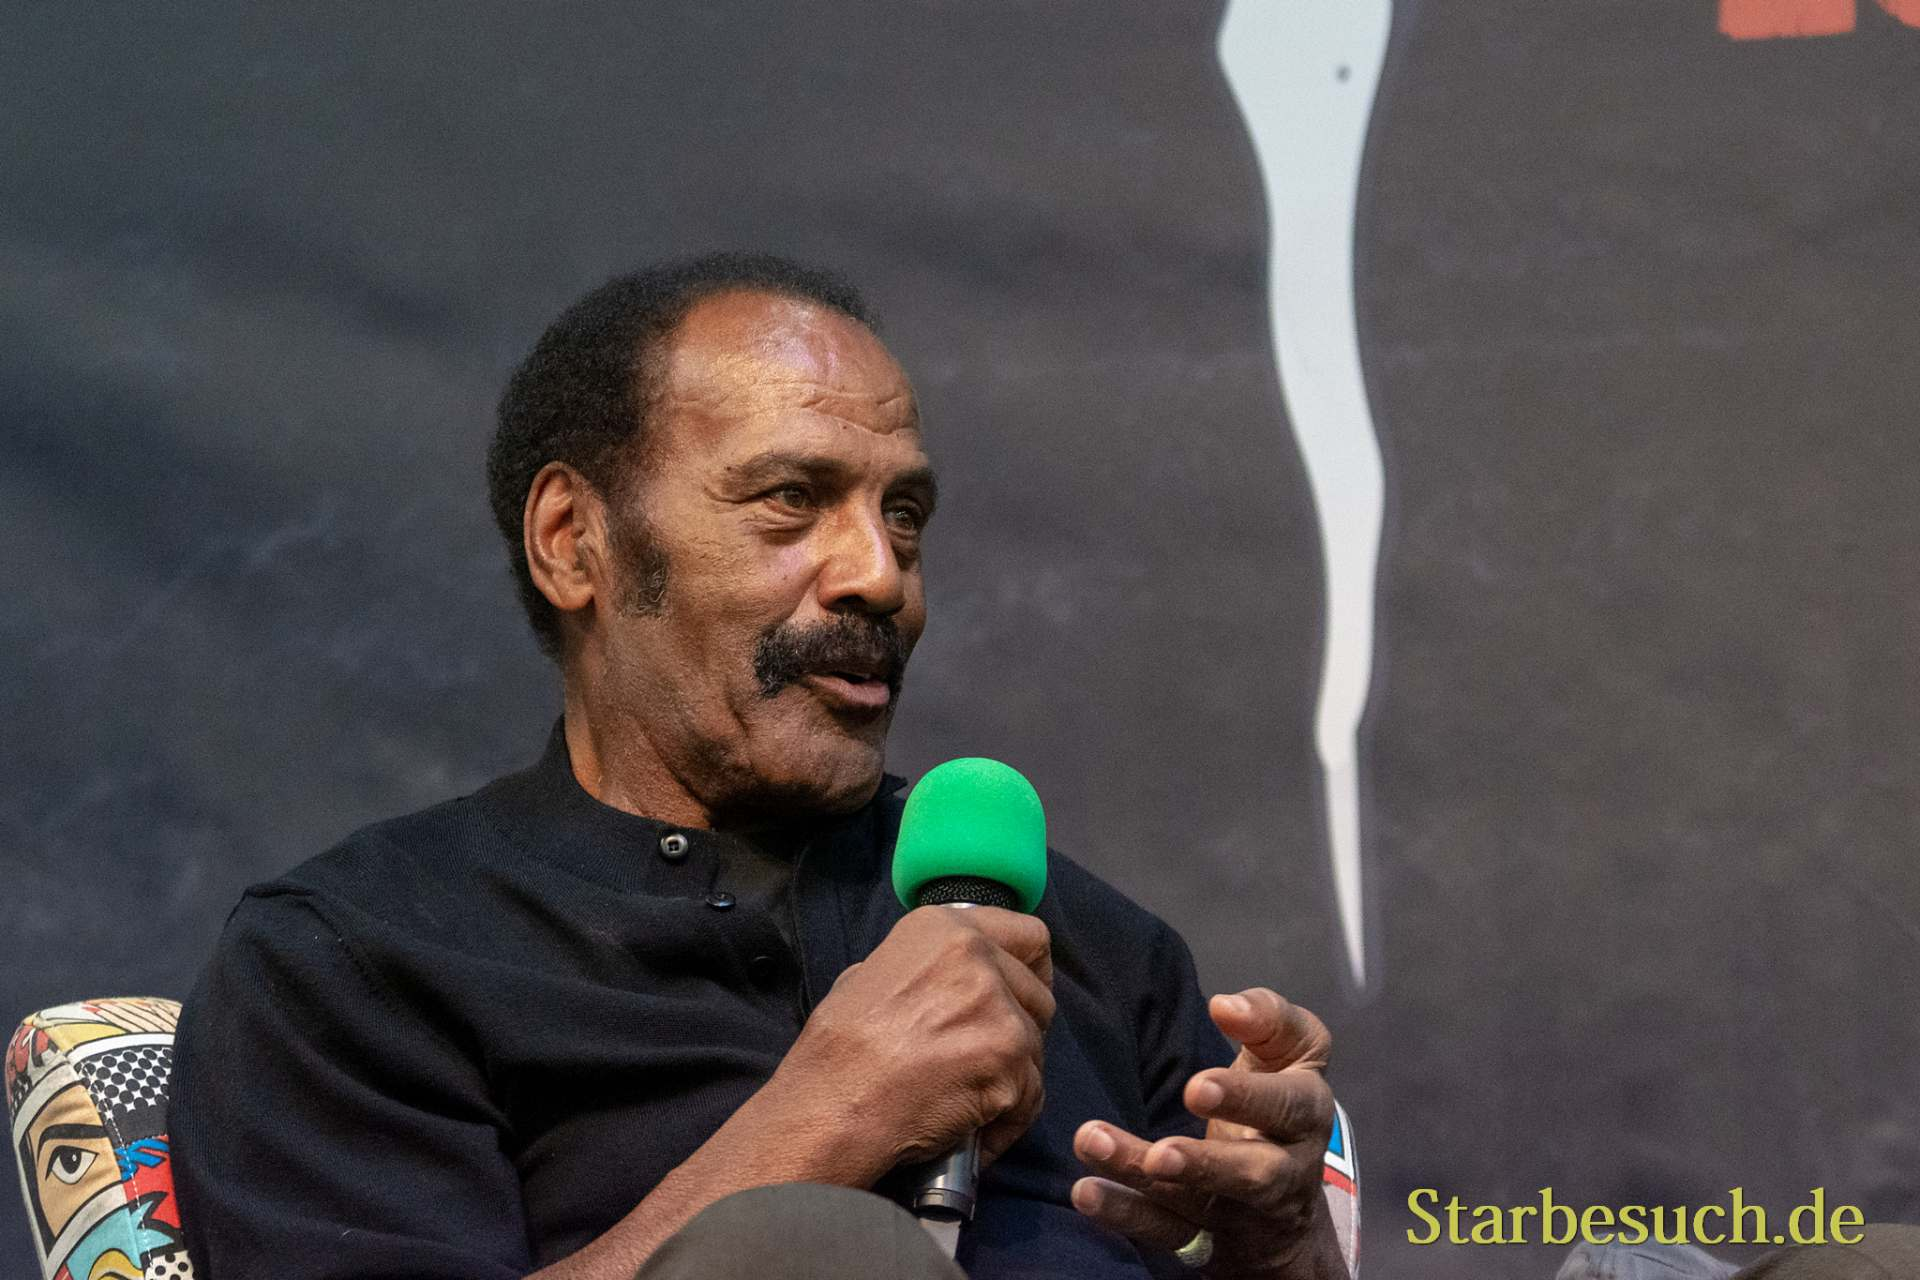 DORTMUND, GERMANY - November 3rd 2018: Fred Williamson at Weekend of Hell 2018